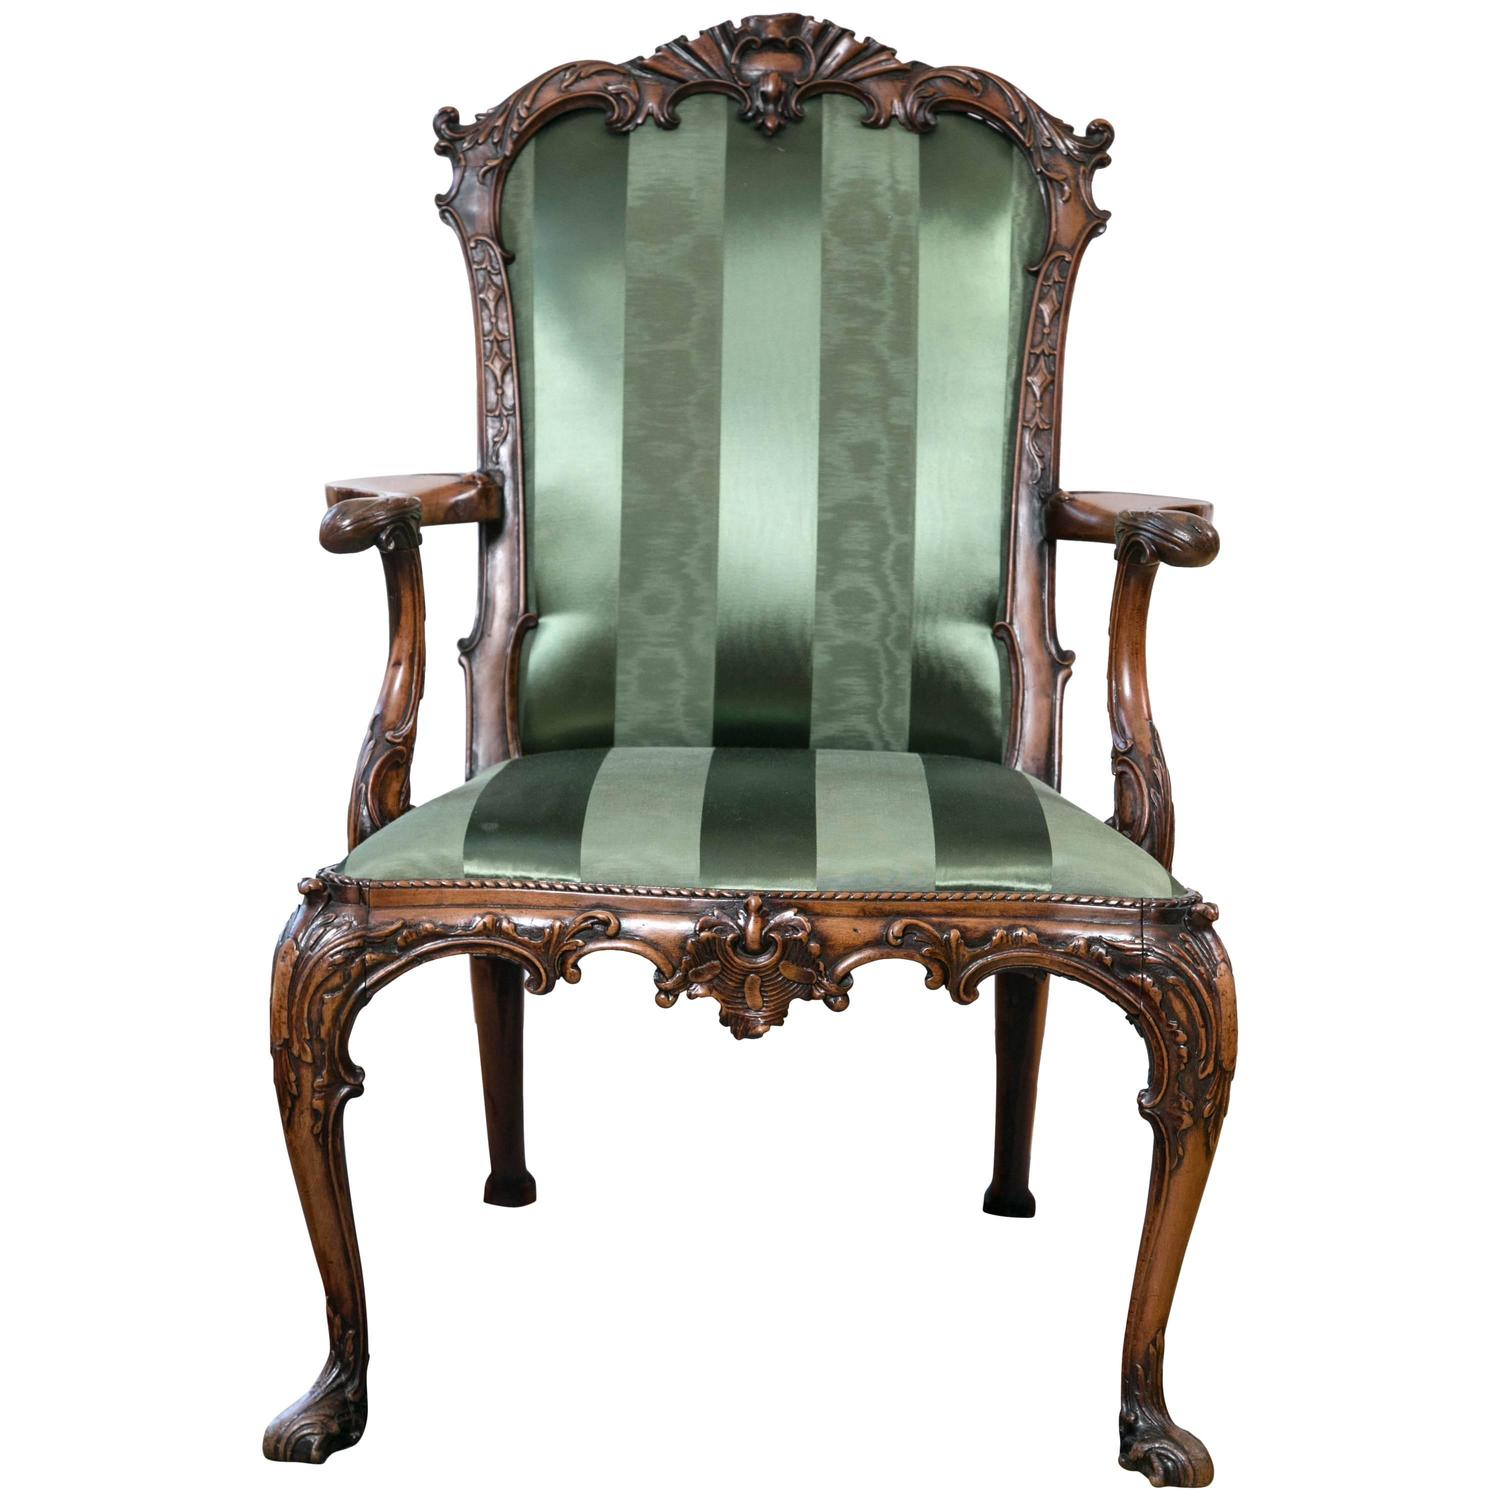 English Rococo Revival Carved Mahogany Armchair For Sale at 1stdibs